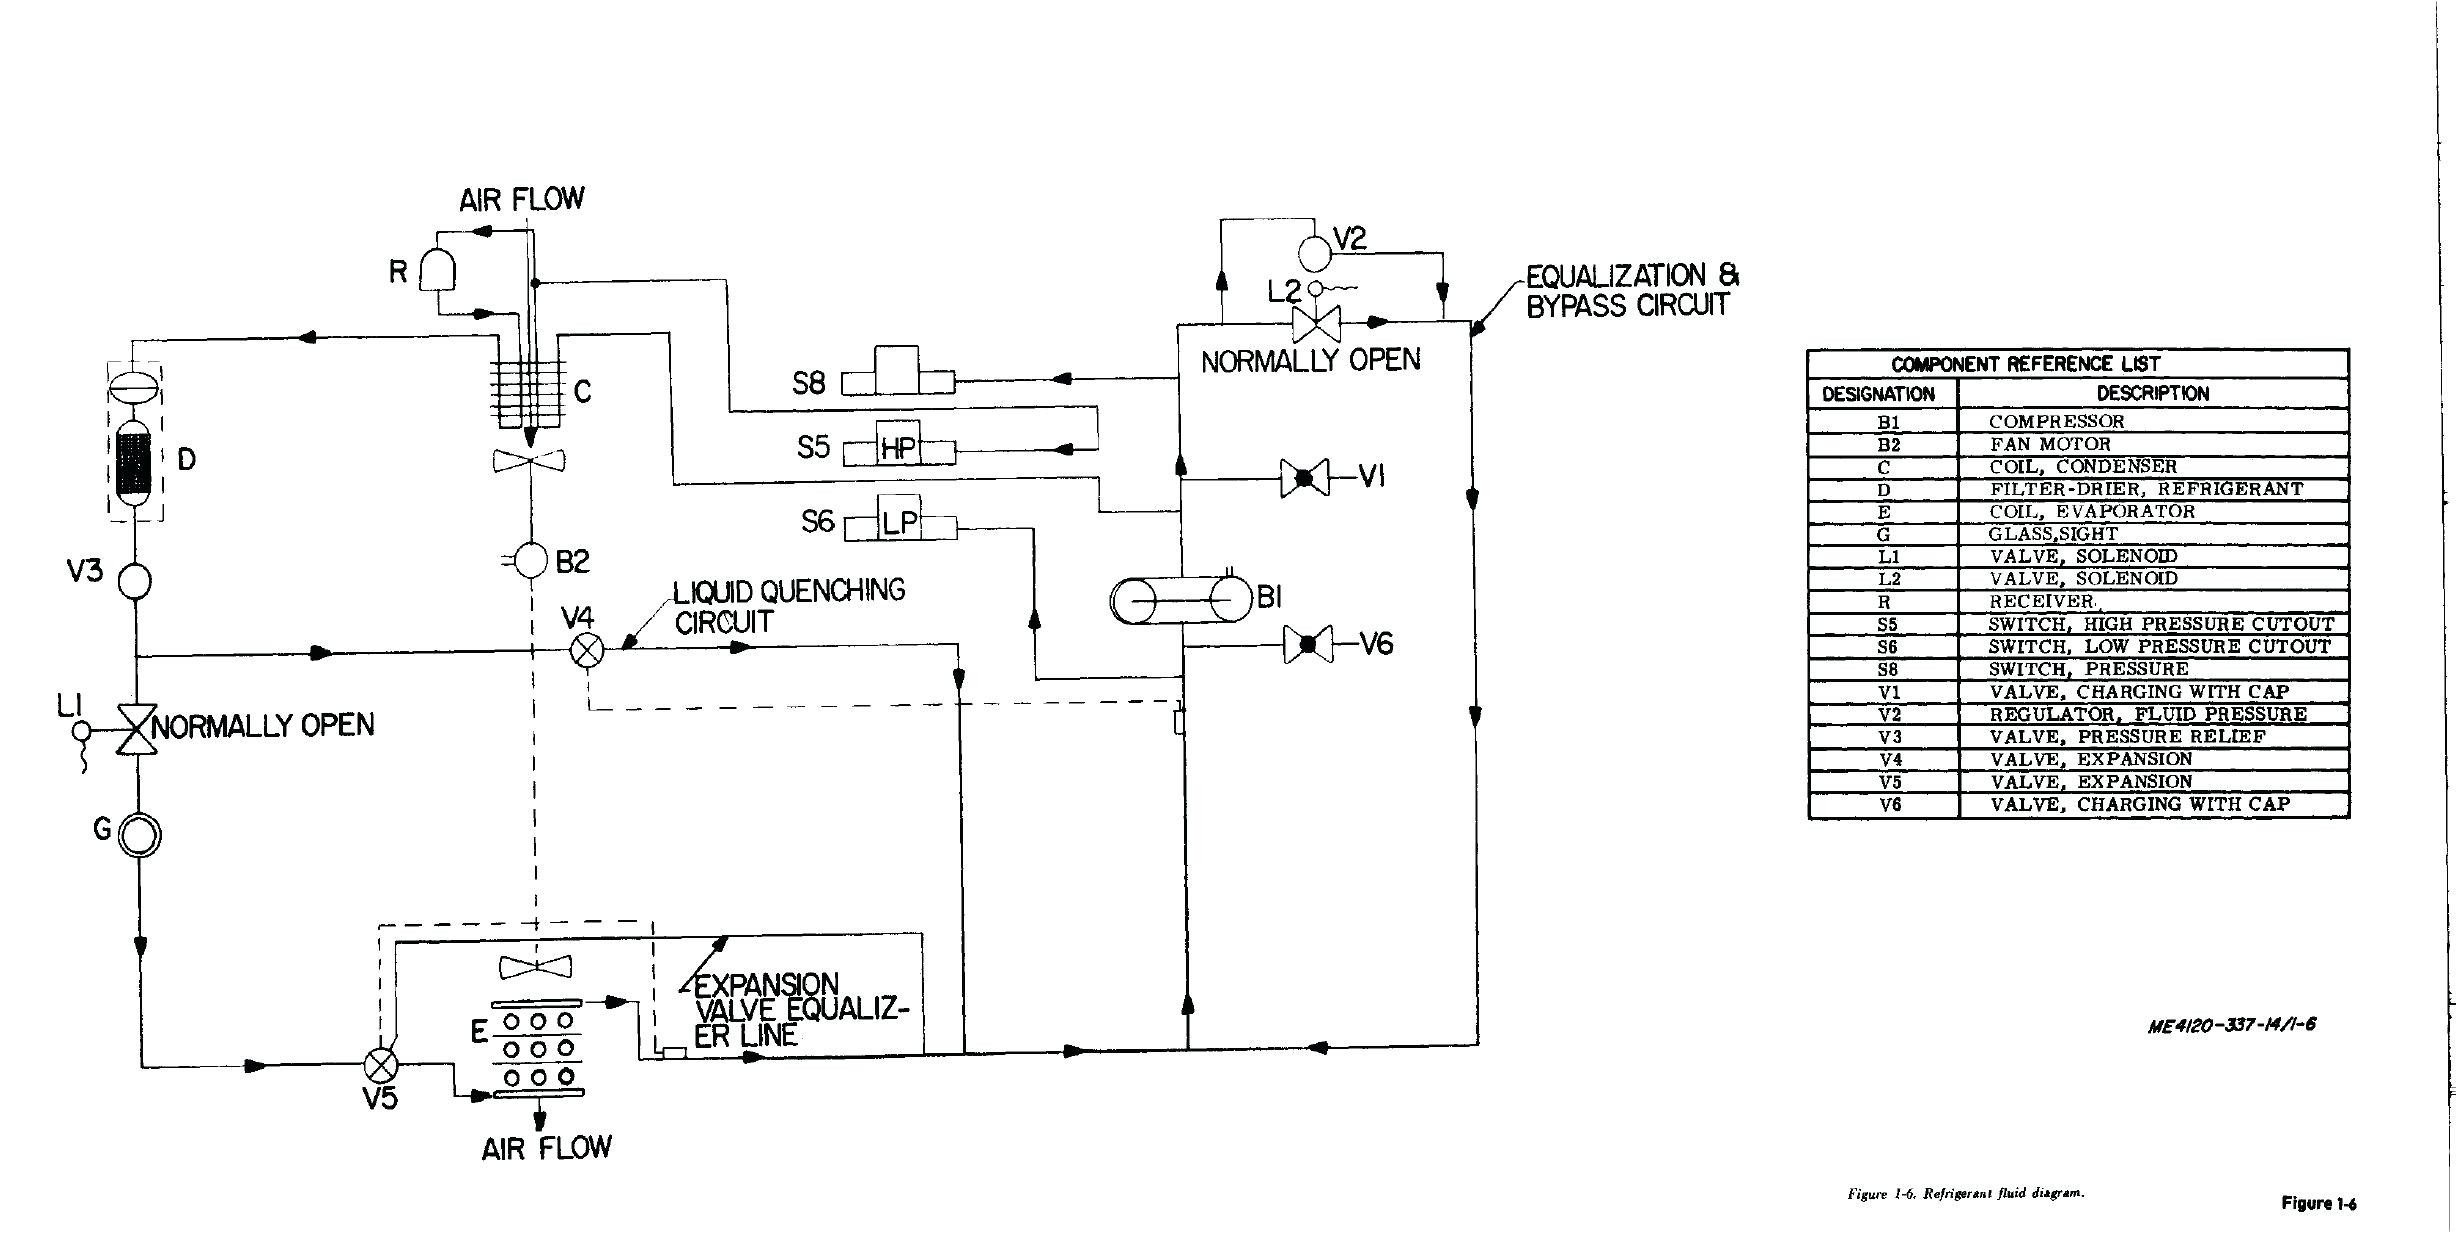 Full Size of Auto Air Conditioning Wiring Diagram Pdf Electrical Diagrams For Systems Part Two Conditioner